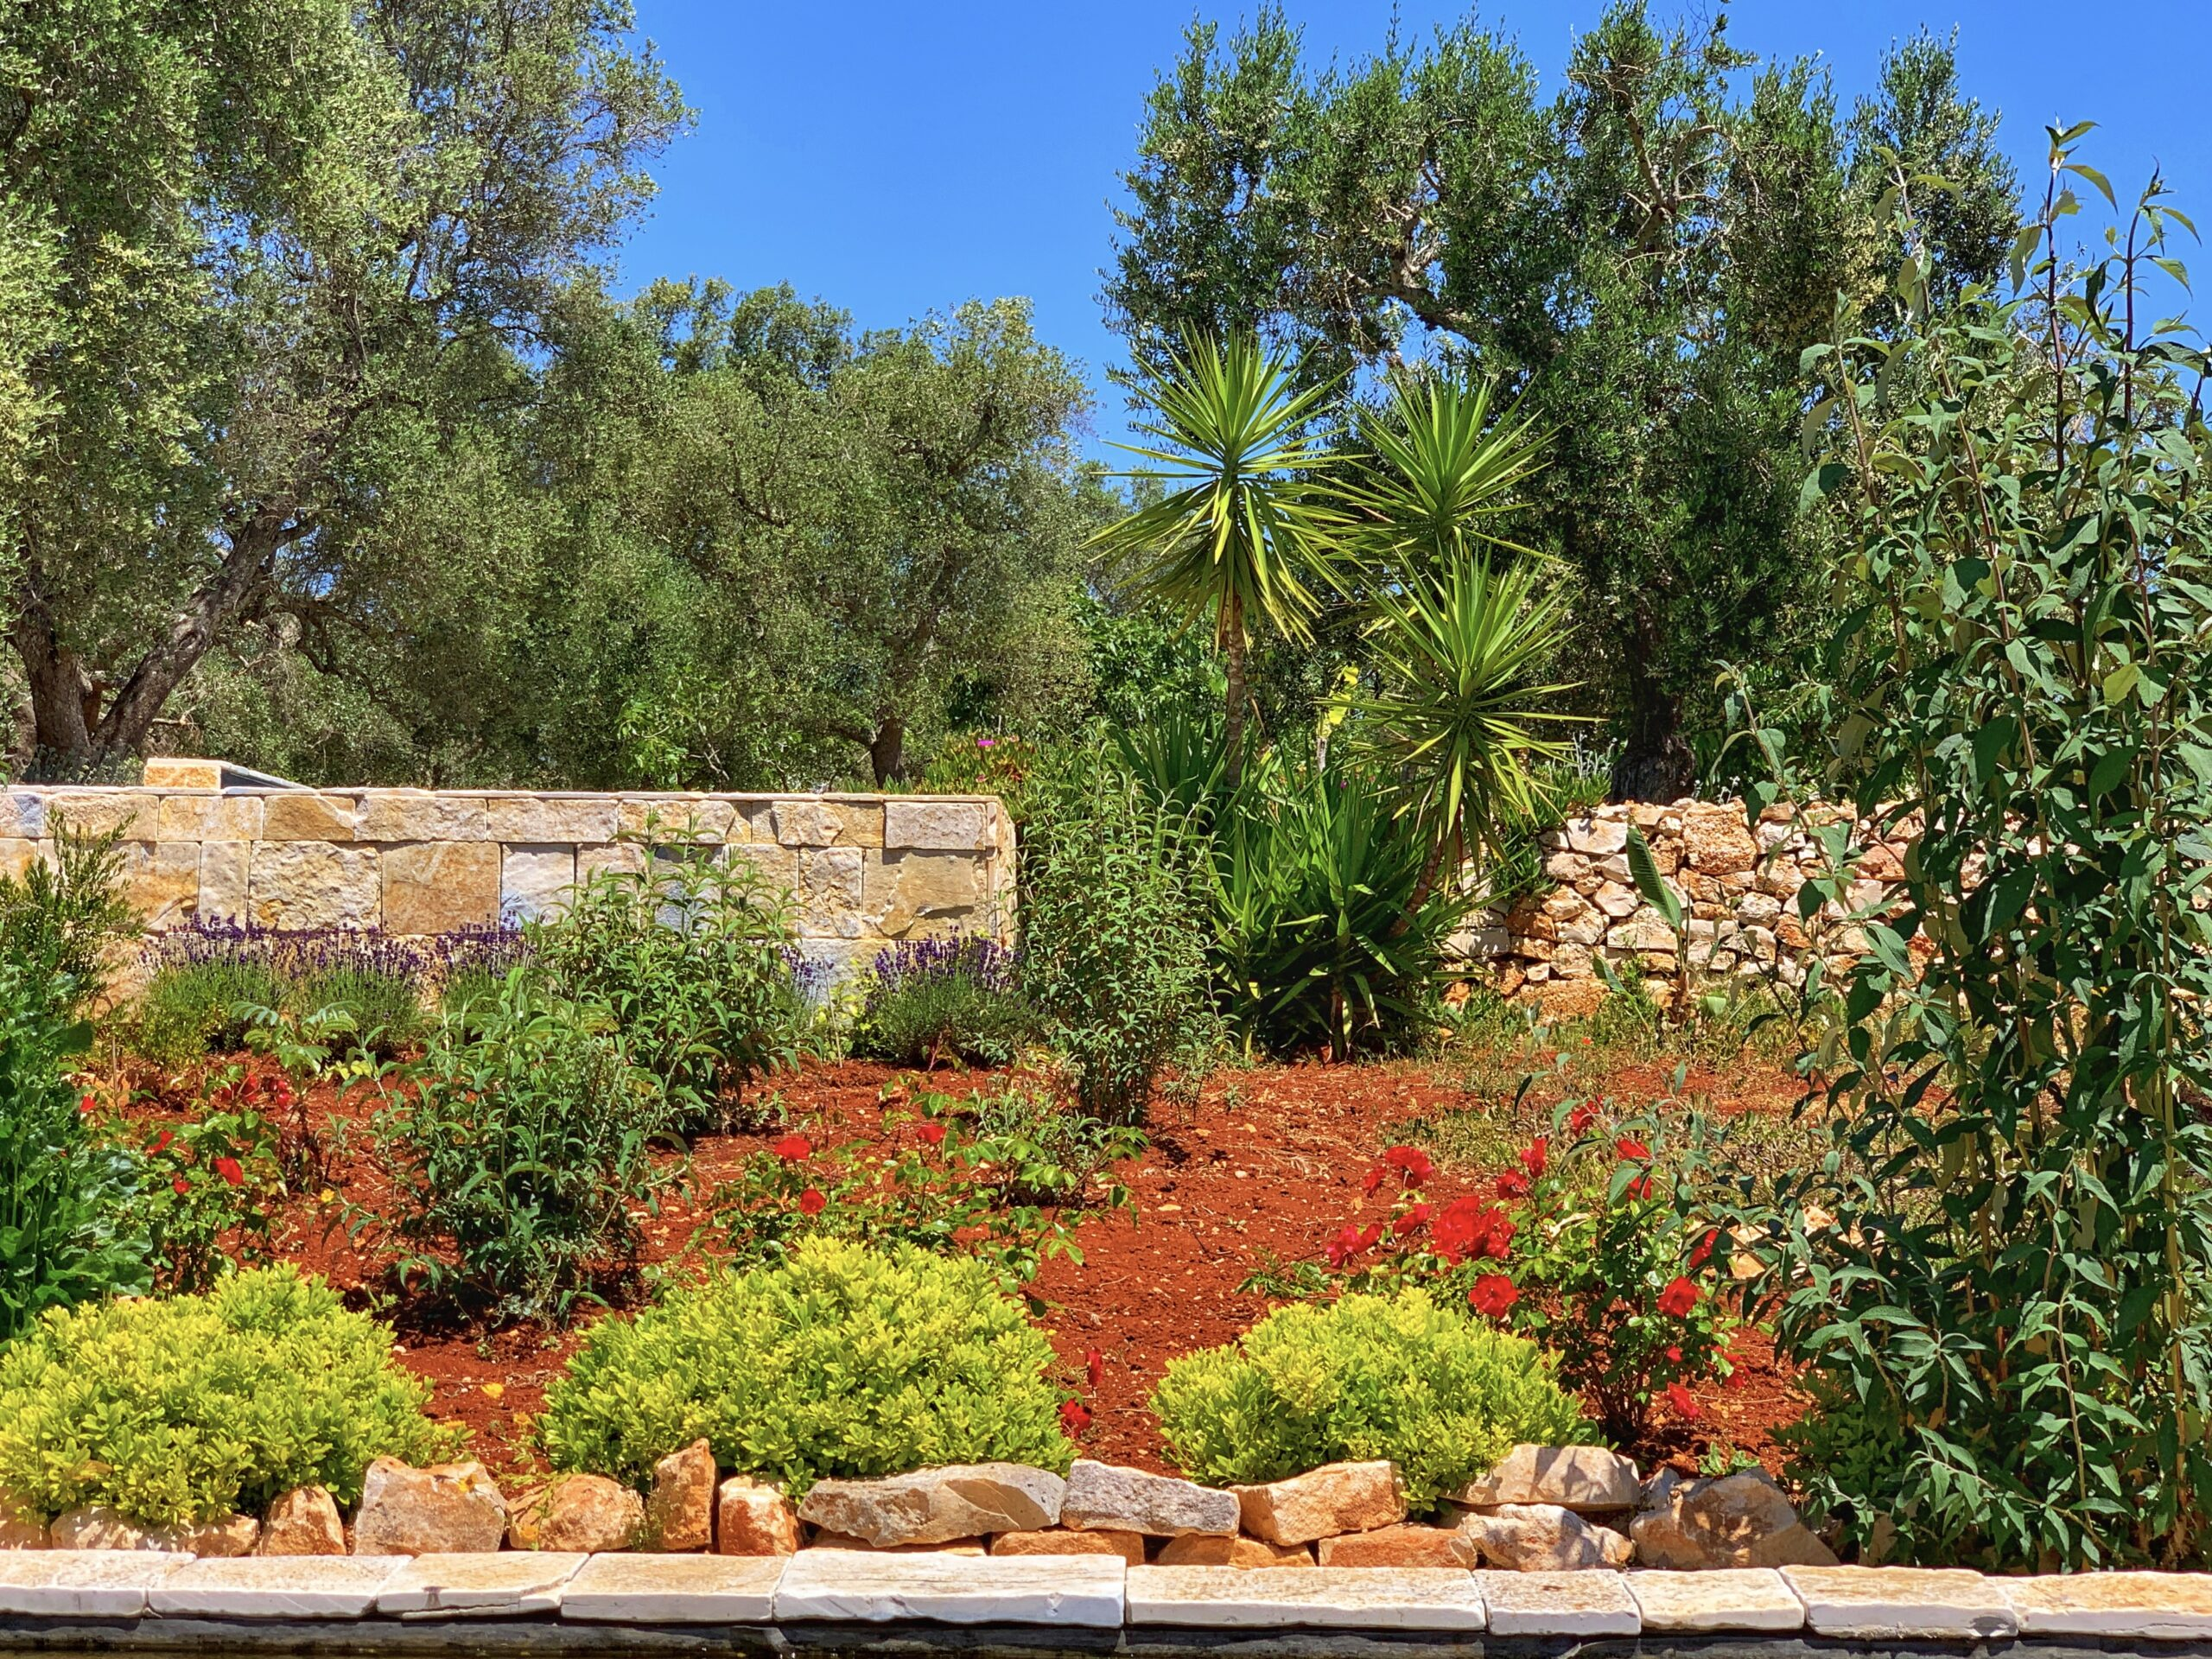 Relax in style the best gay and gay friendly accommodation in Puglia, Anima near Ostuni   Photo The Big Gay Podcast from Puglia